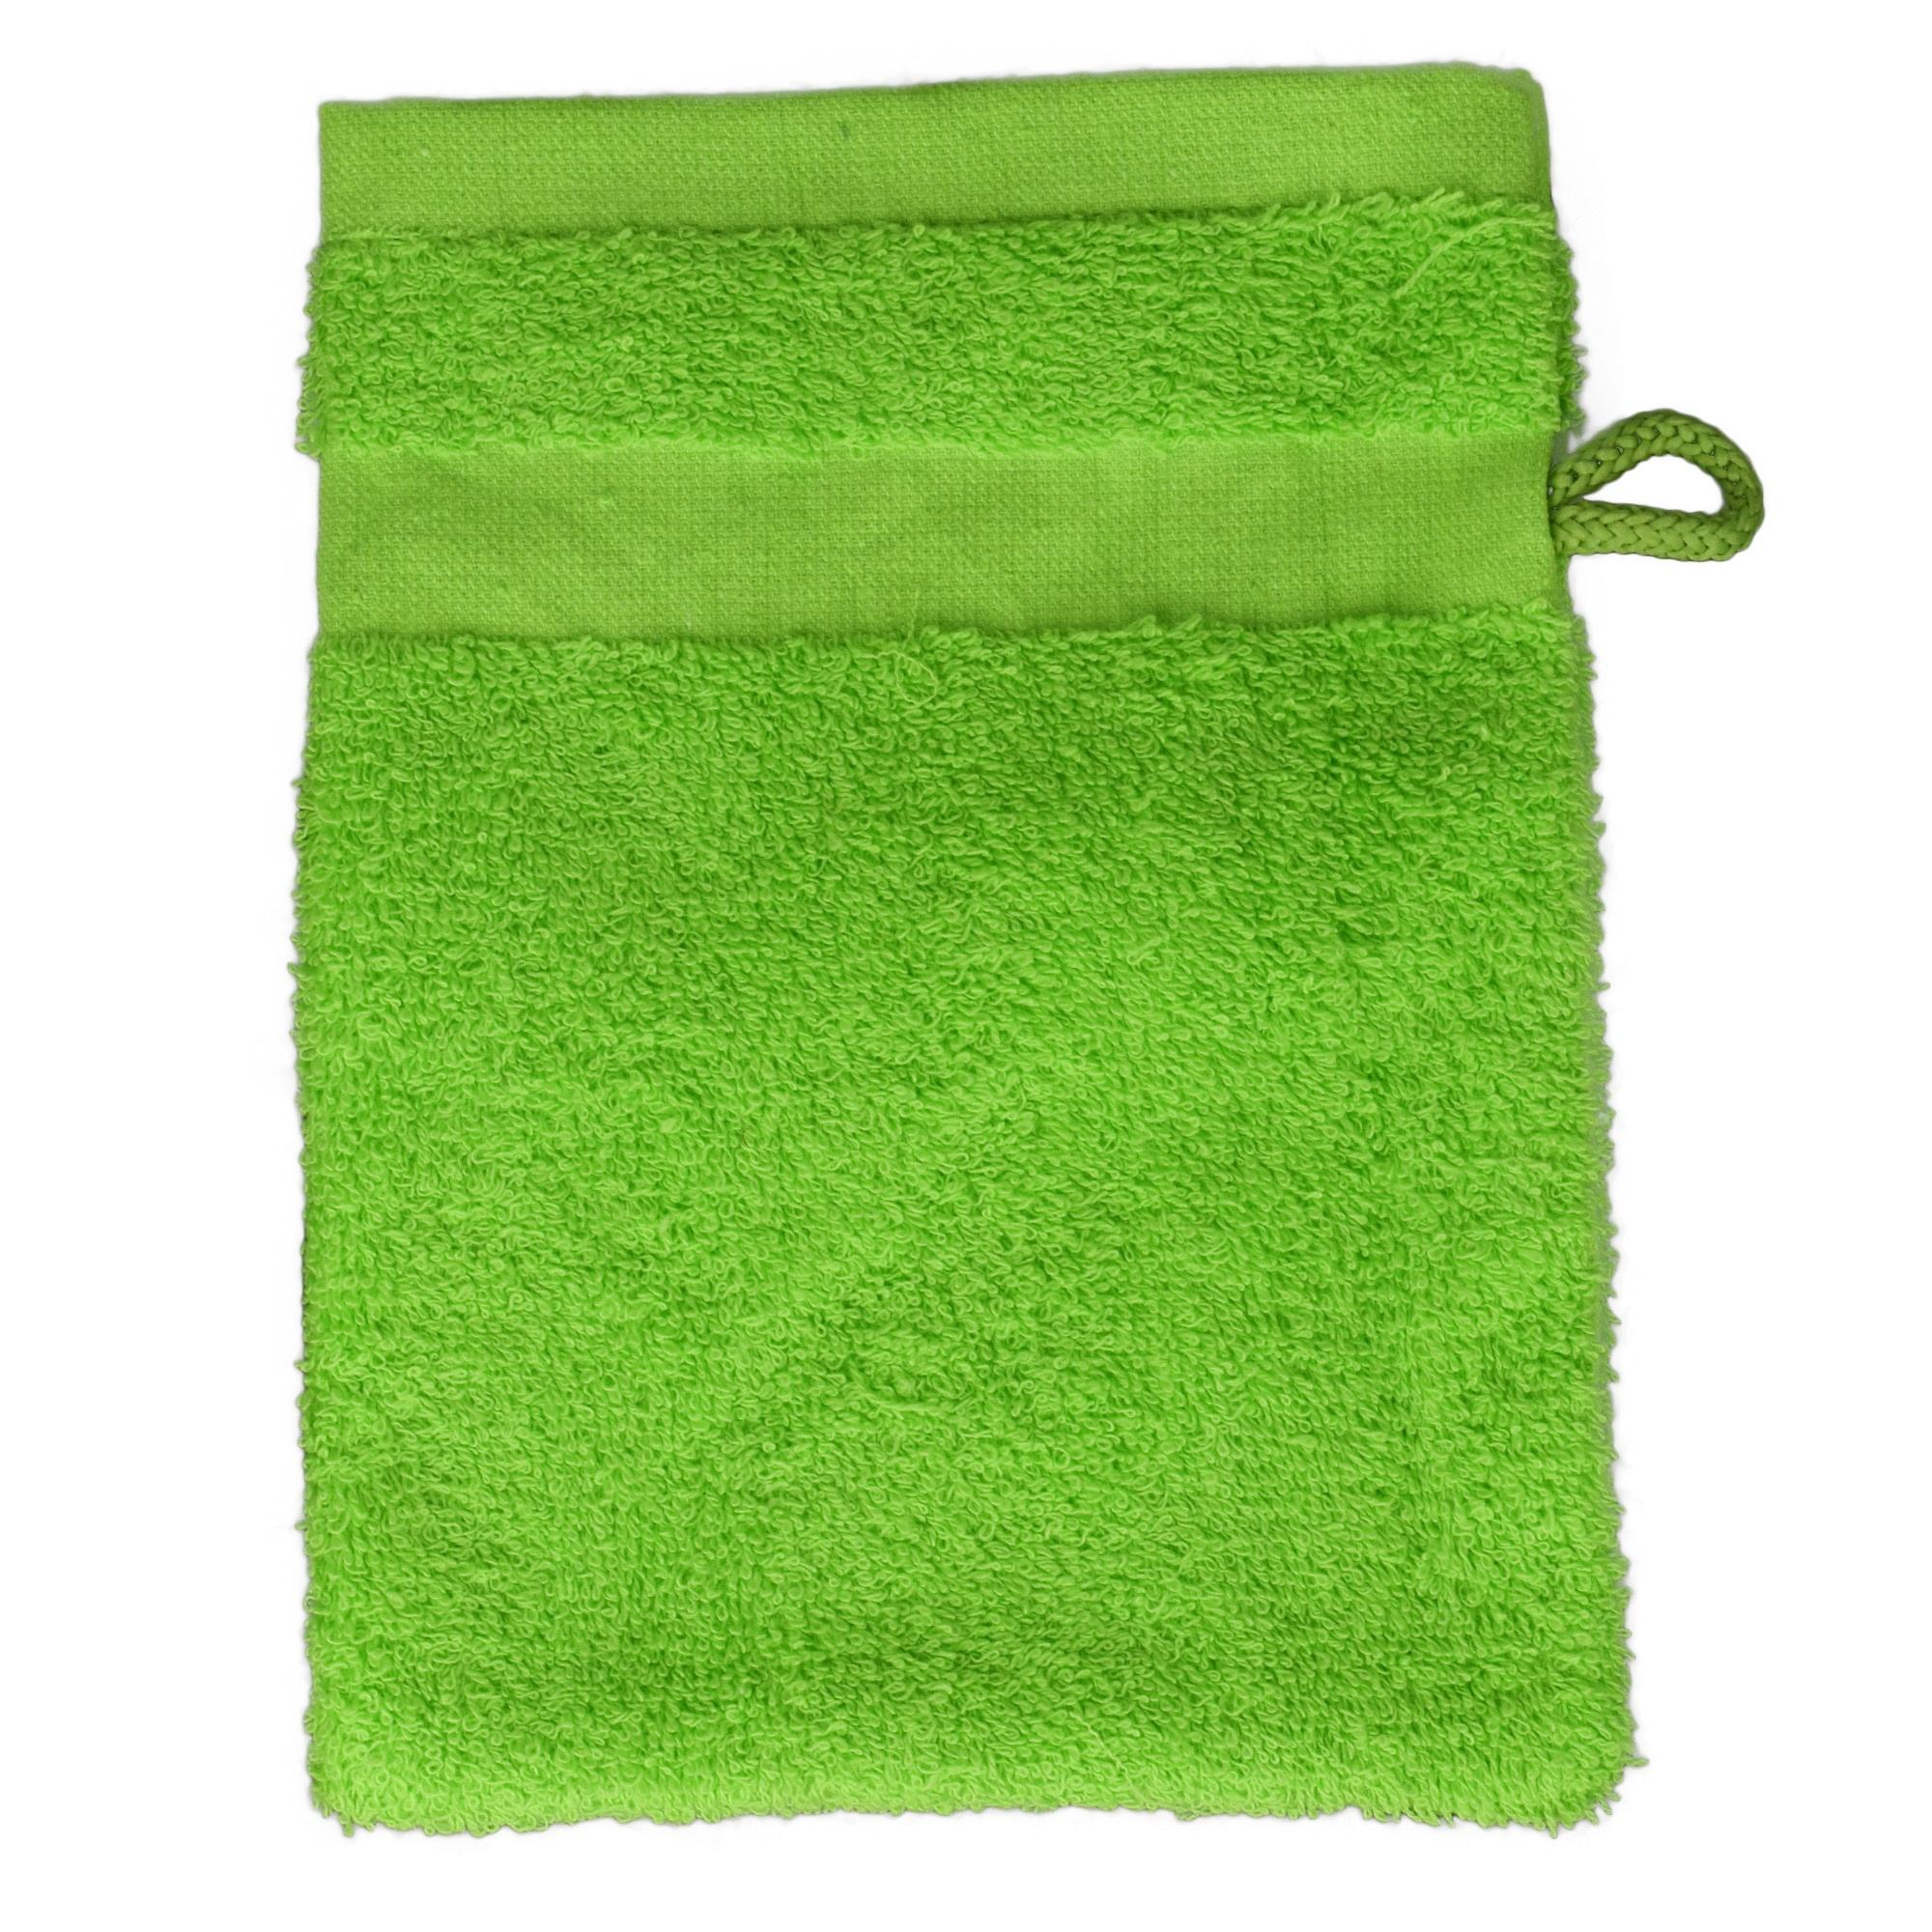 Latest Cotton Terry Body Bath Shower Sponge Glove Suppliers